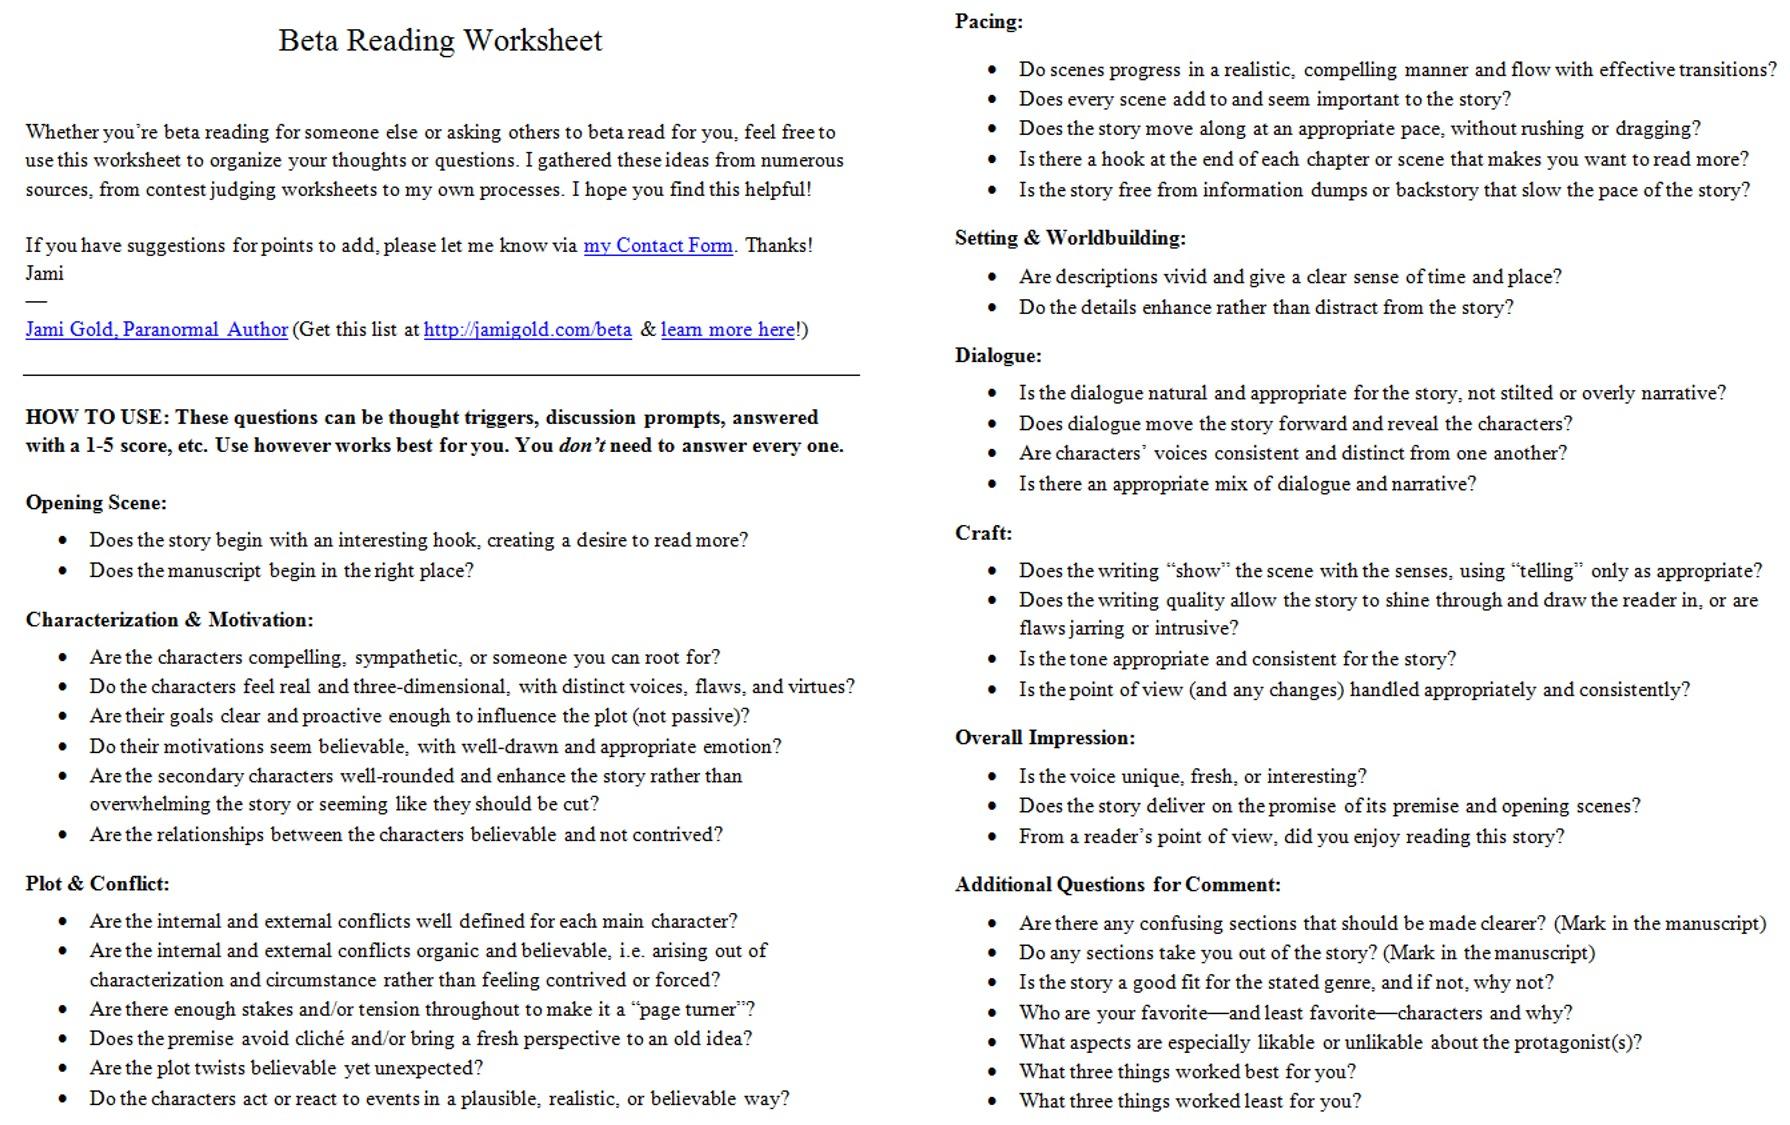 Weirdmailus  Inspiring Worksheets For Writers  Jami Gold Paranormal Author With Great Screen Shot Of The Twopage Beta Reading Worksheet With Easy On The Eye Unit  Outcome  Meiosis Coloring Worksheet Answers Also Quadratic Factorisation Worksheet In Addition Roles In The Family Worksheet And Radioactive Decay And Half Life Worksheet Answers As Well As Science Lab Safety Rules Worksheet Additionally Cause And Effect Worksheets For Rd Grade From Jamigoldcom With Weirdmailus  Great Worksheets For Writers  Jami Gold Paranormal Author With Easy On The Eye Screen Shot Of The Twopage Beta Reading Worksheet And Inspiring Unit  Outcome  Meiosis Coloring Worksheet Answers Also Quadratic Factorisation Worksheet In Addition Roles In The Family Worksheet From Jamigoldcom